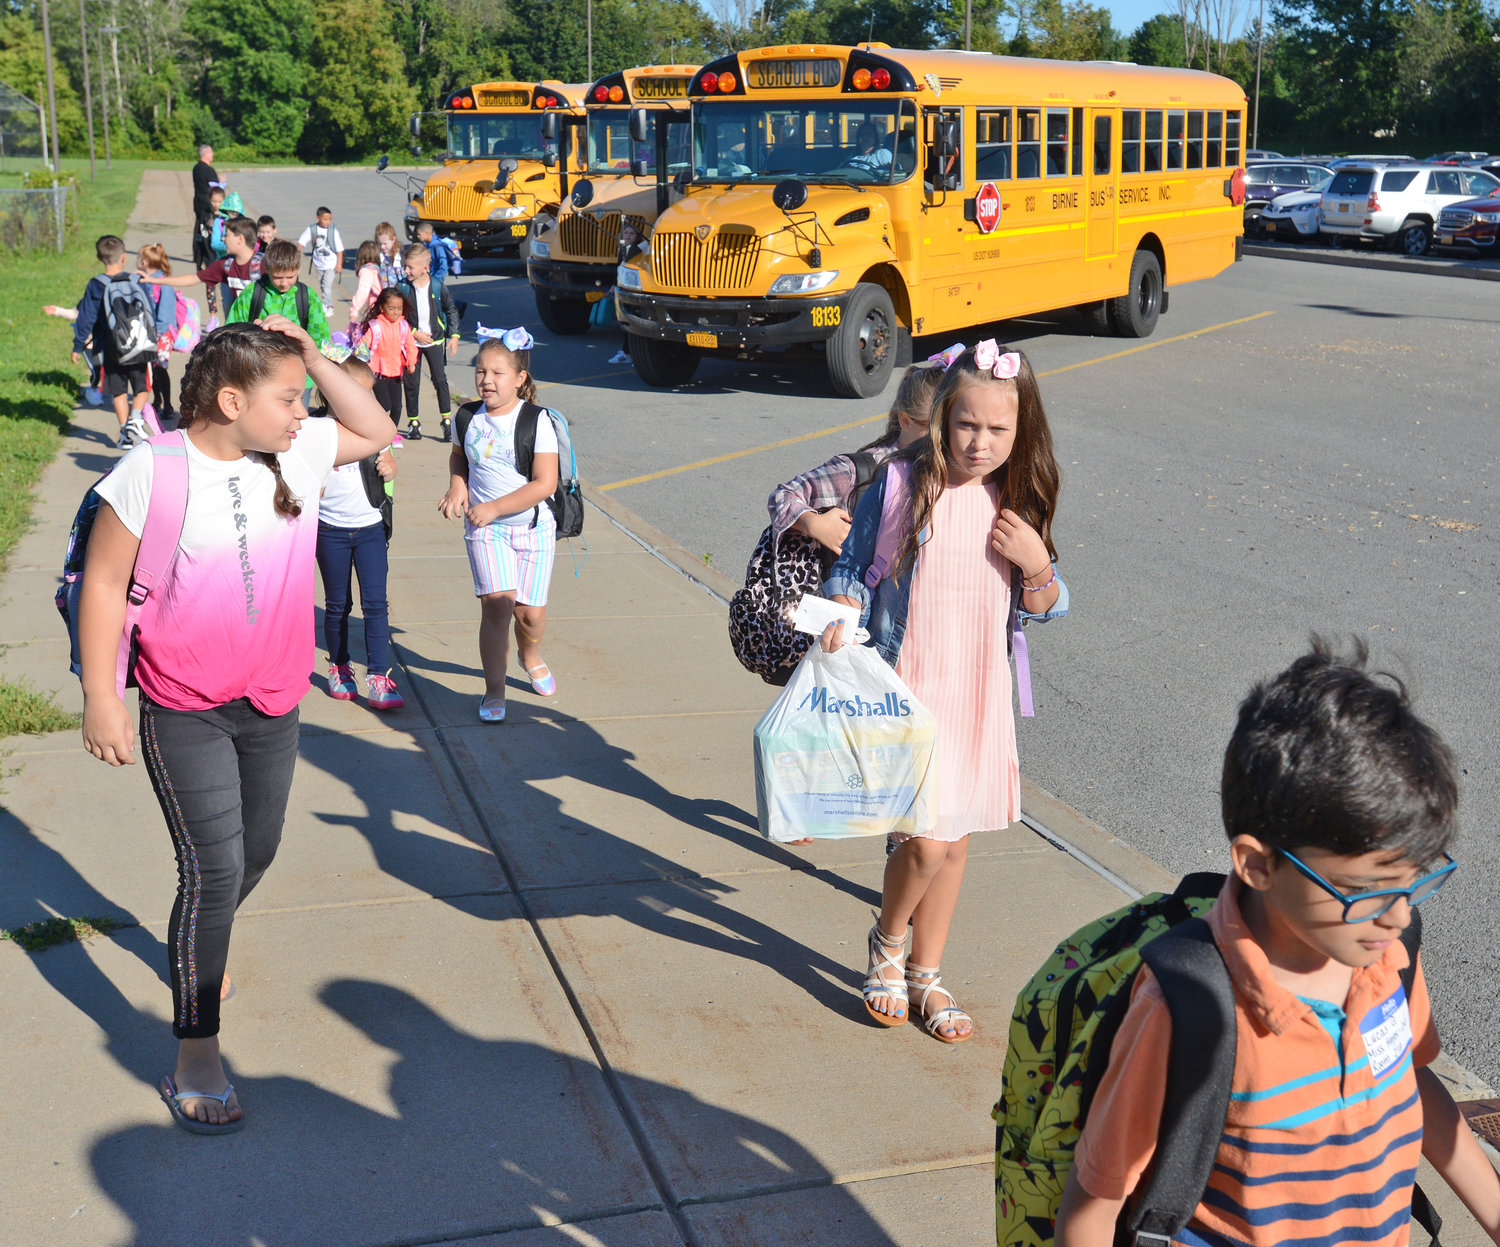 Children depart school buses at Staley Elementary School on their first day of school.